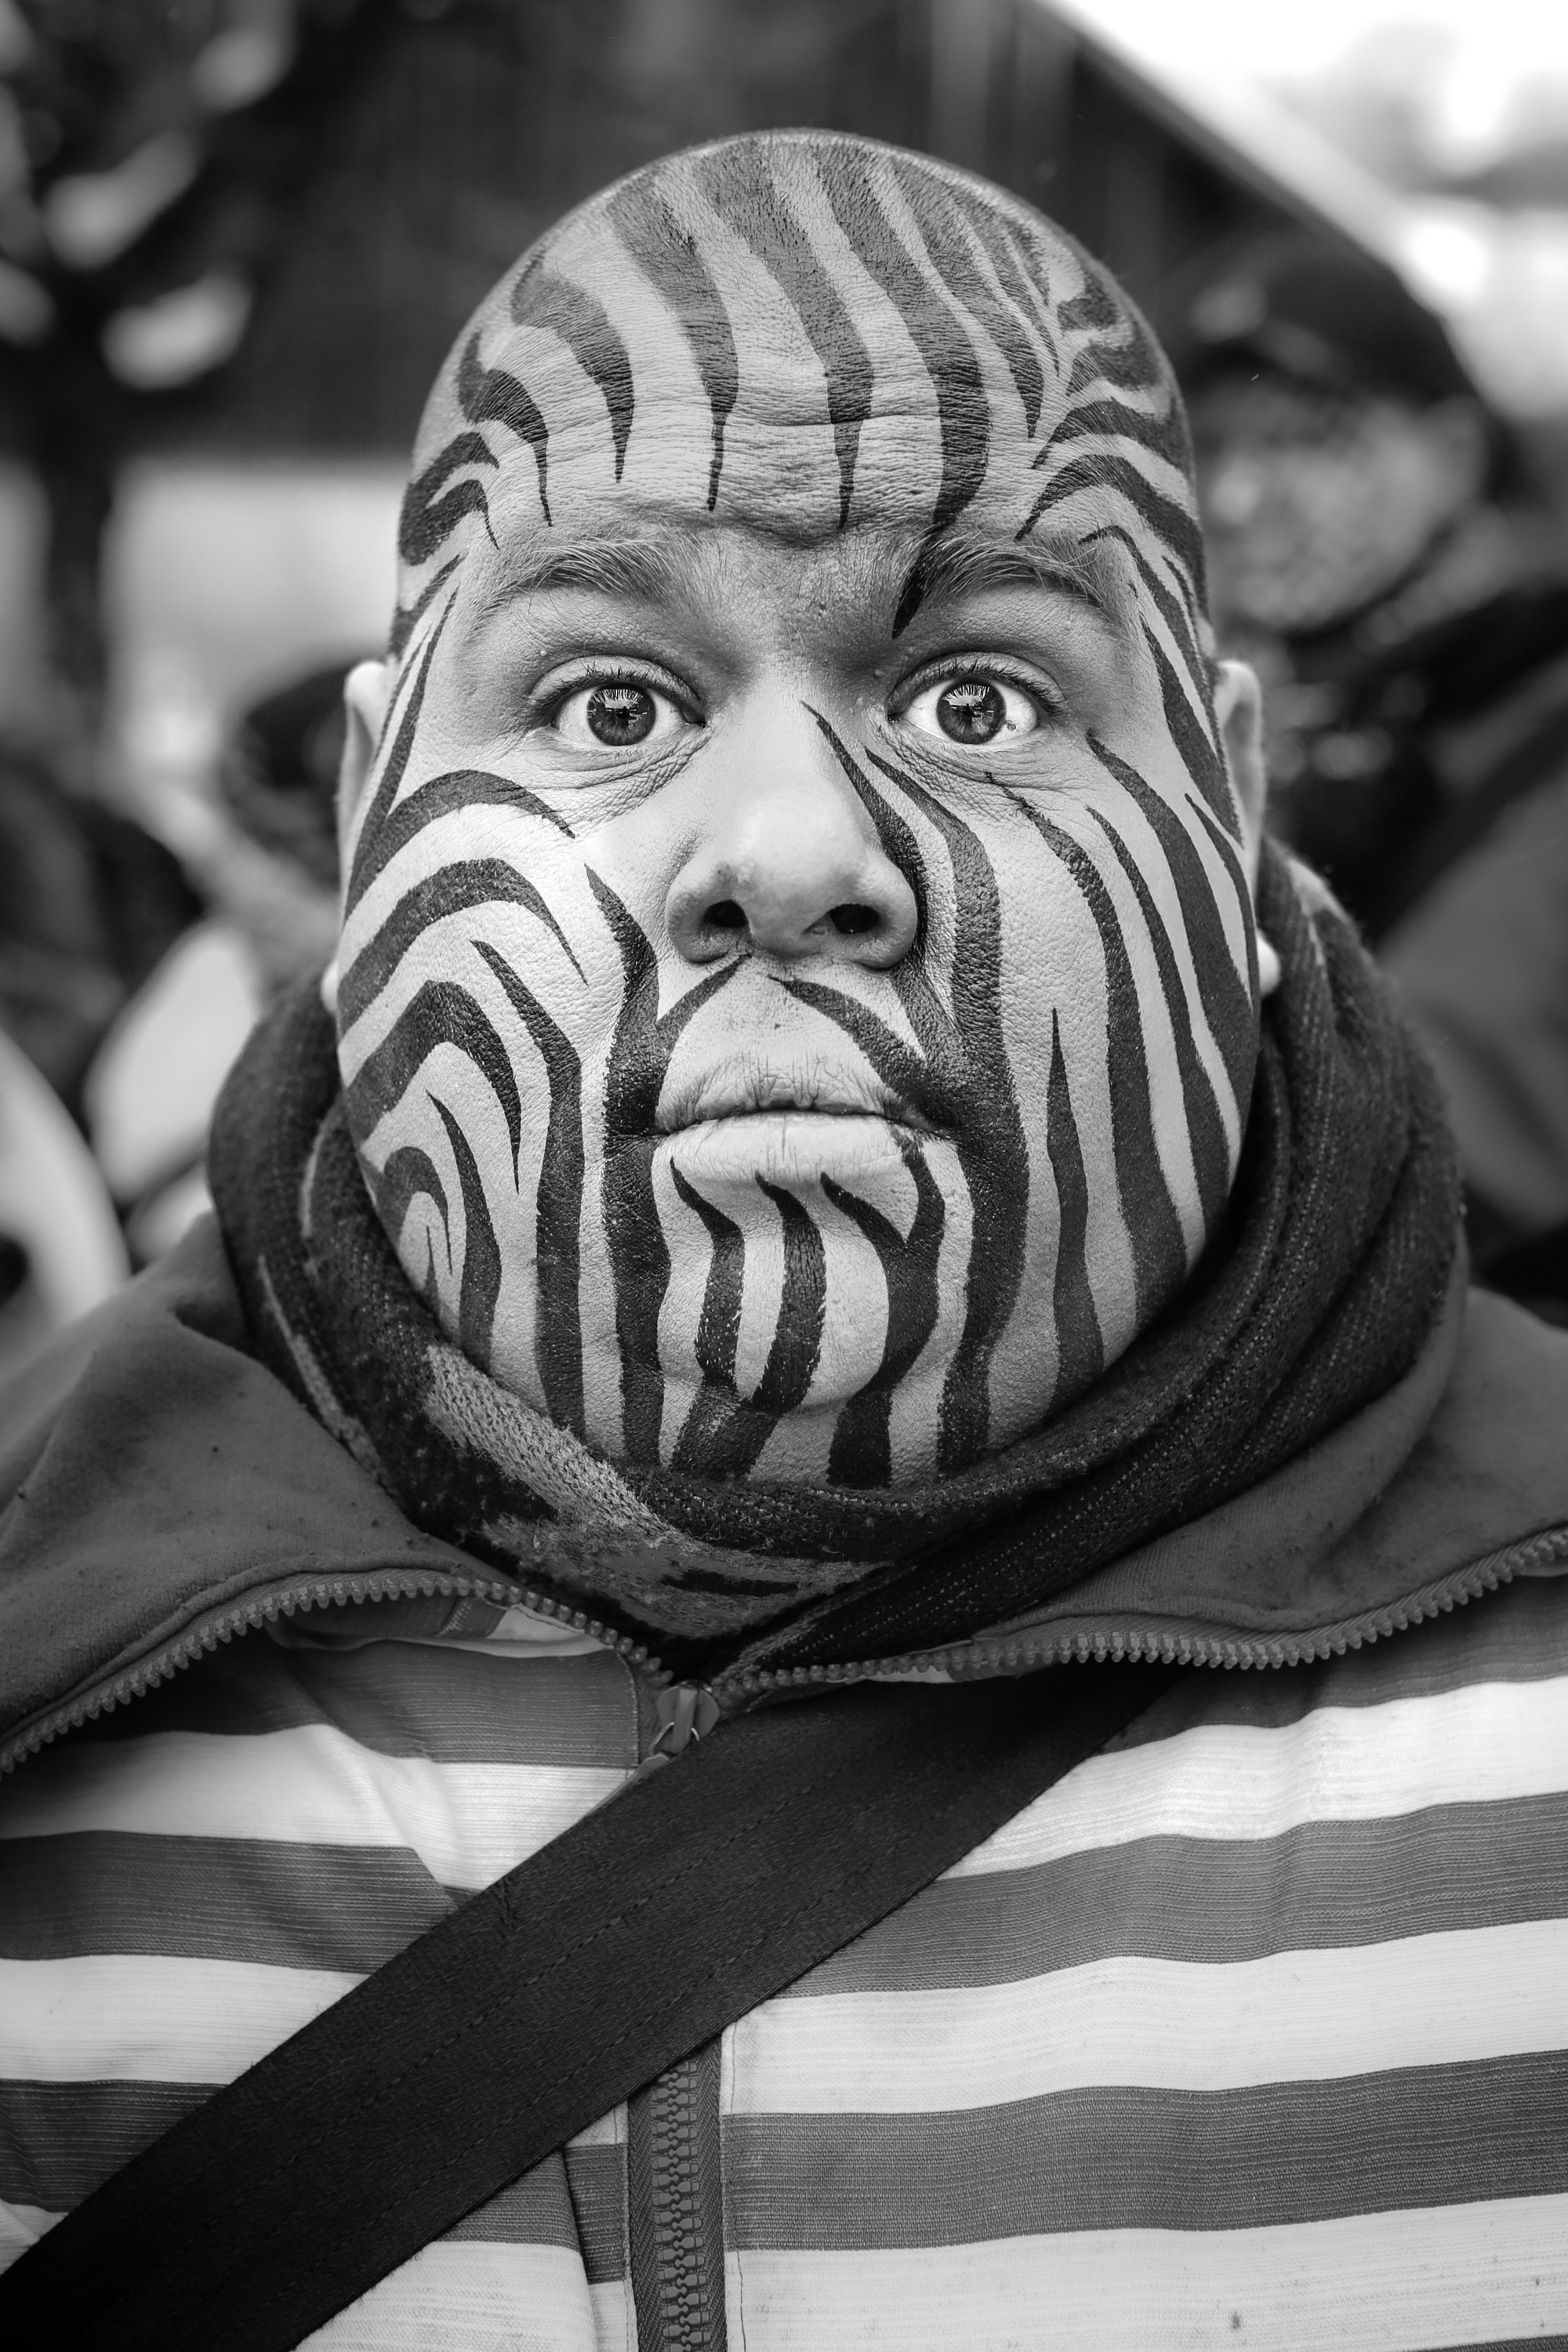 Carnaval face